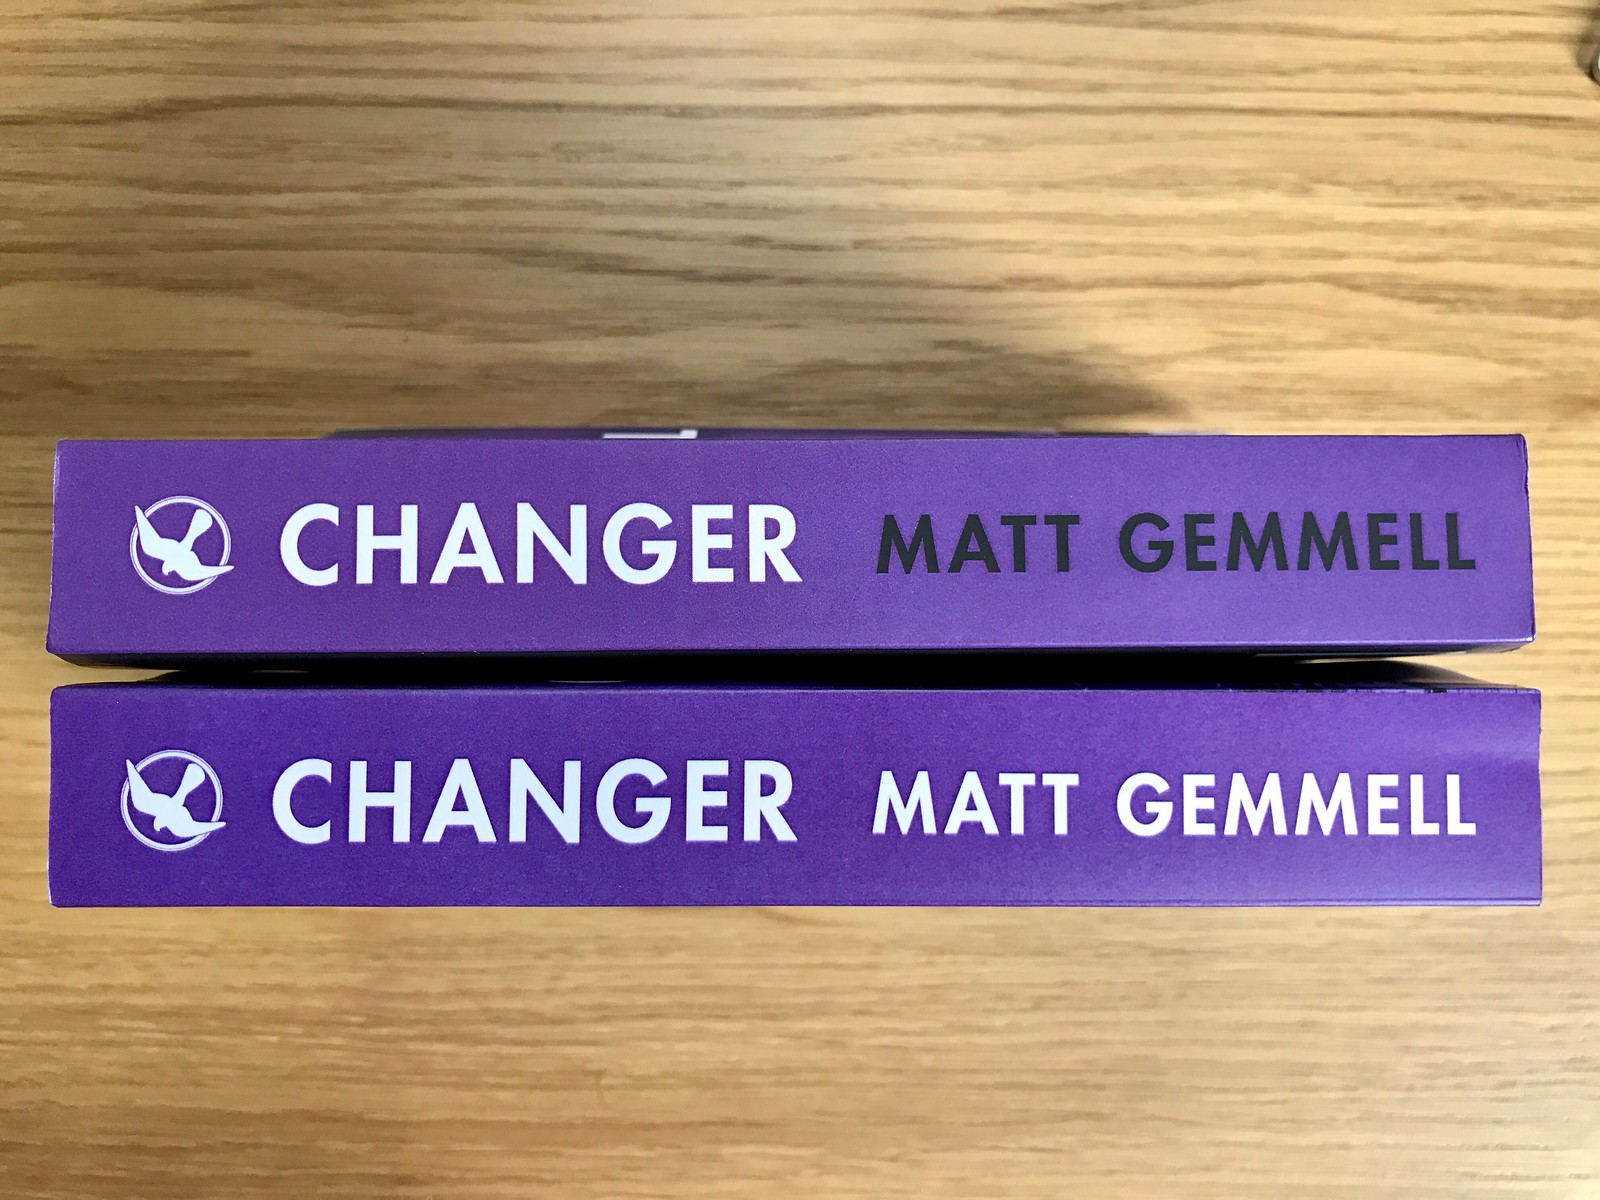 CHANGER new edition spine comparison, with the newer spine having the author's name in white instead of black.